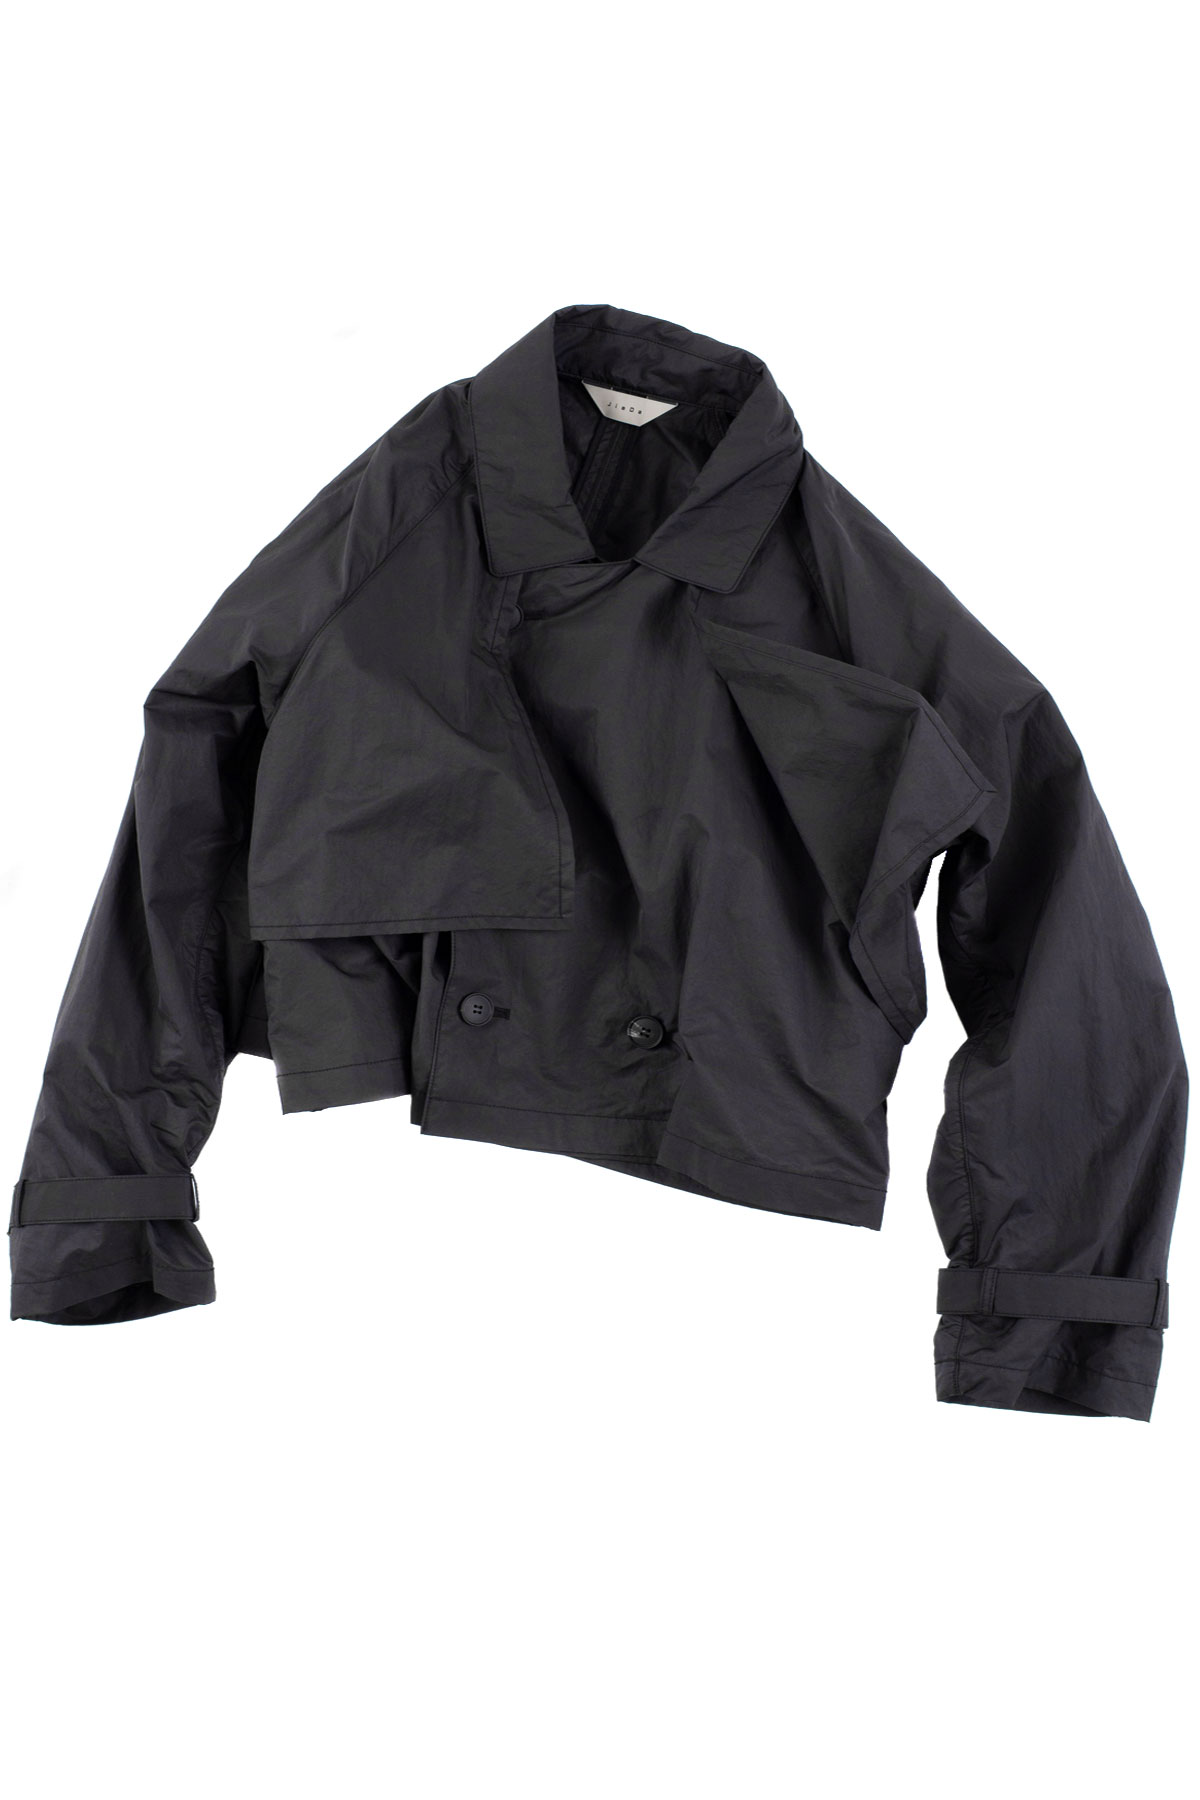 JieDa : Short Trench Jacket (Black)